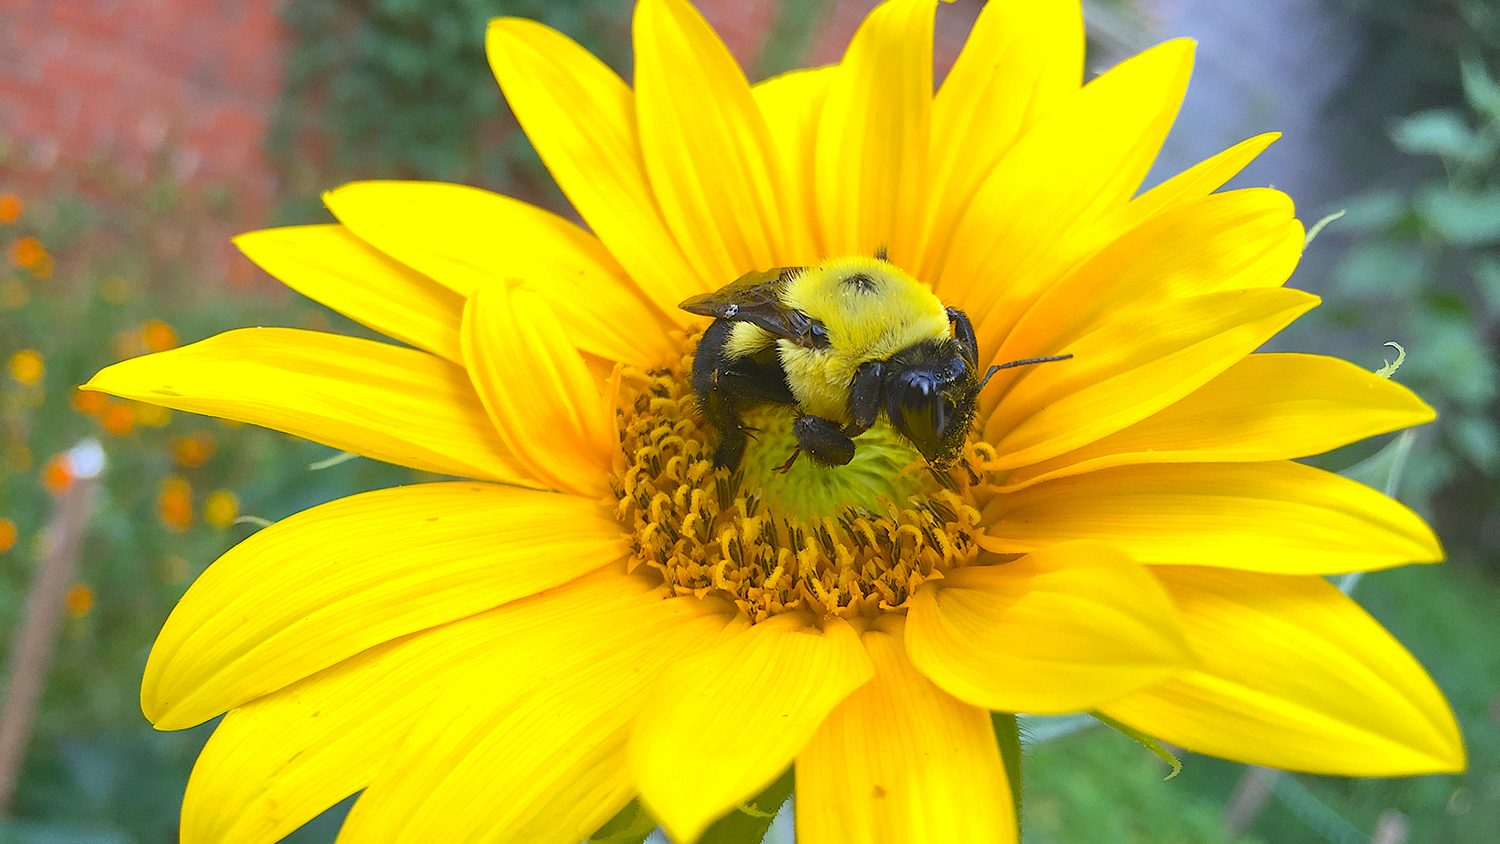 Sunflower research shows aid to bees